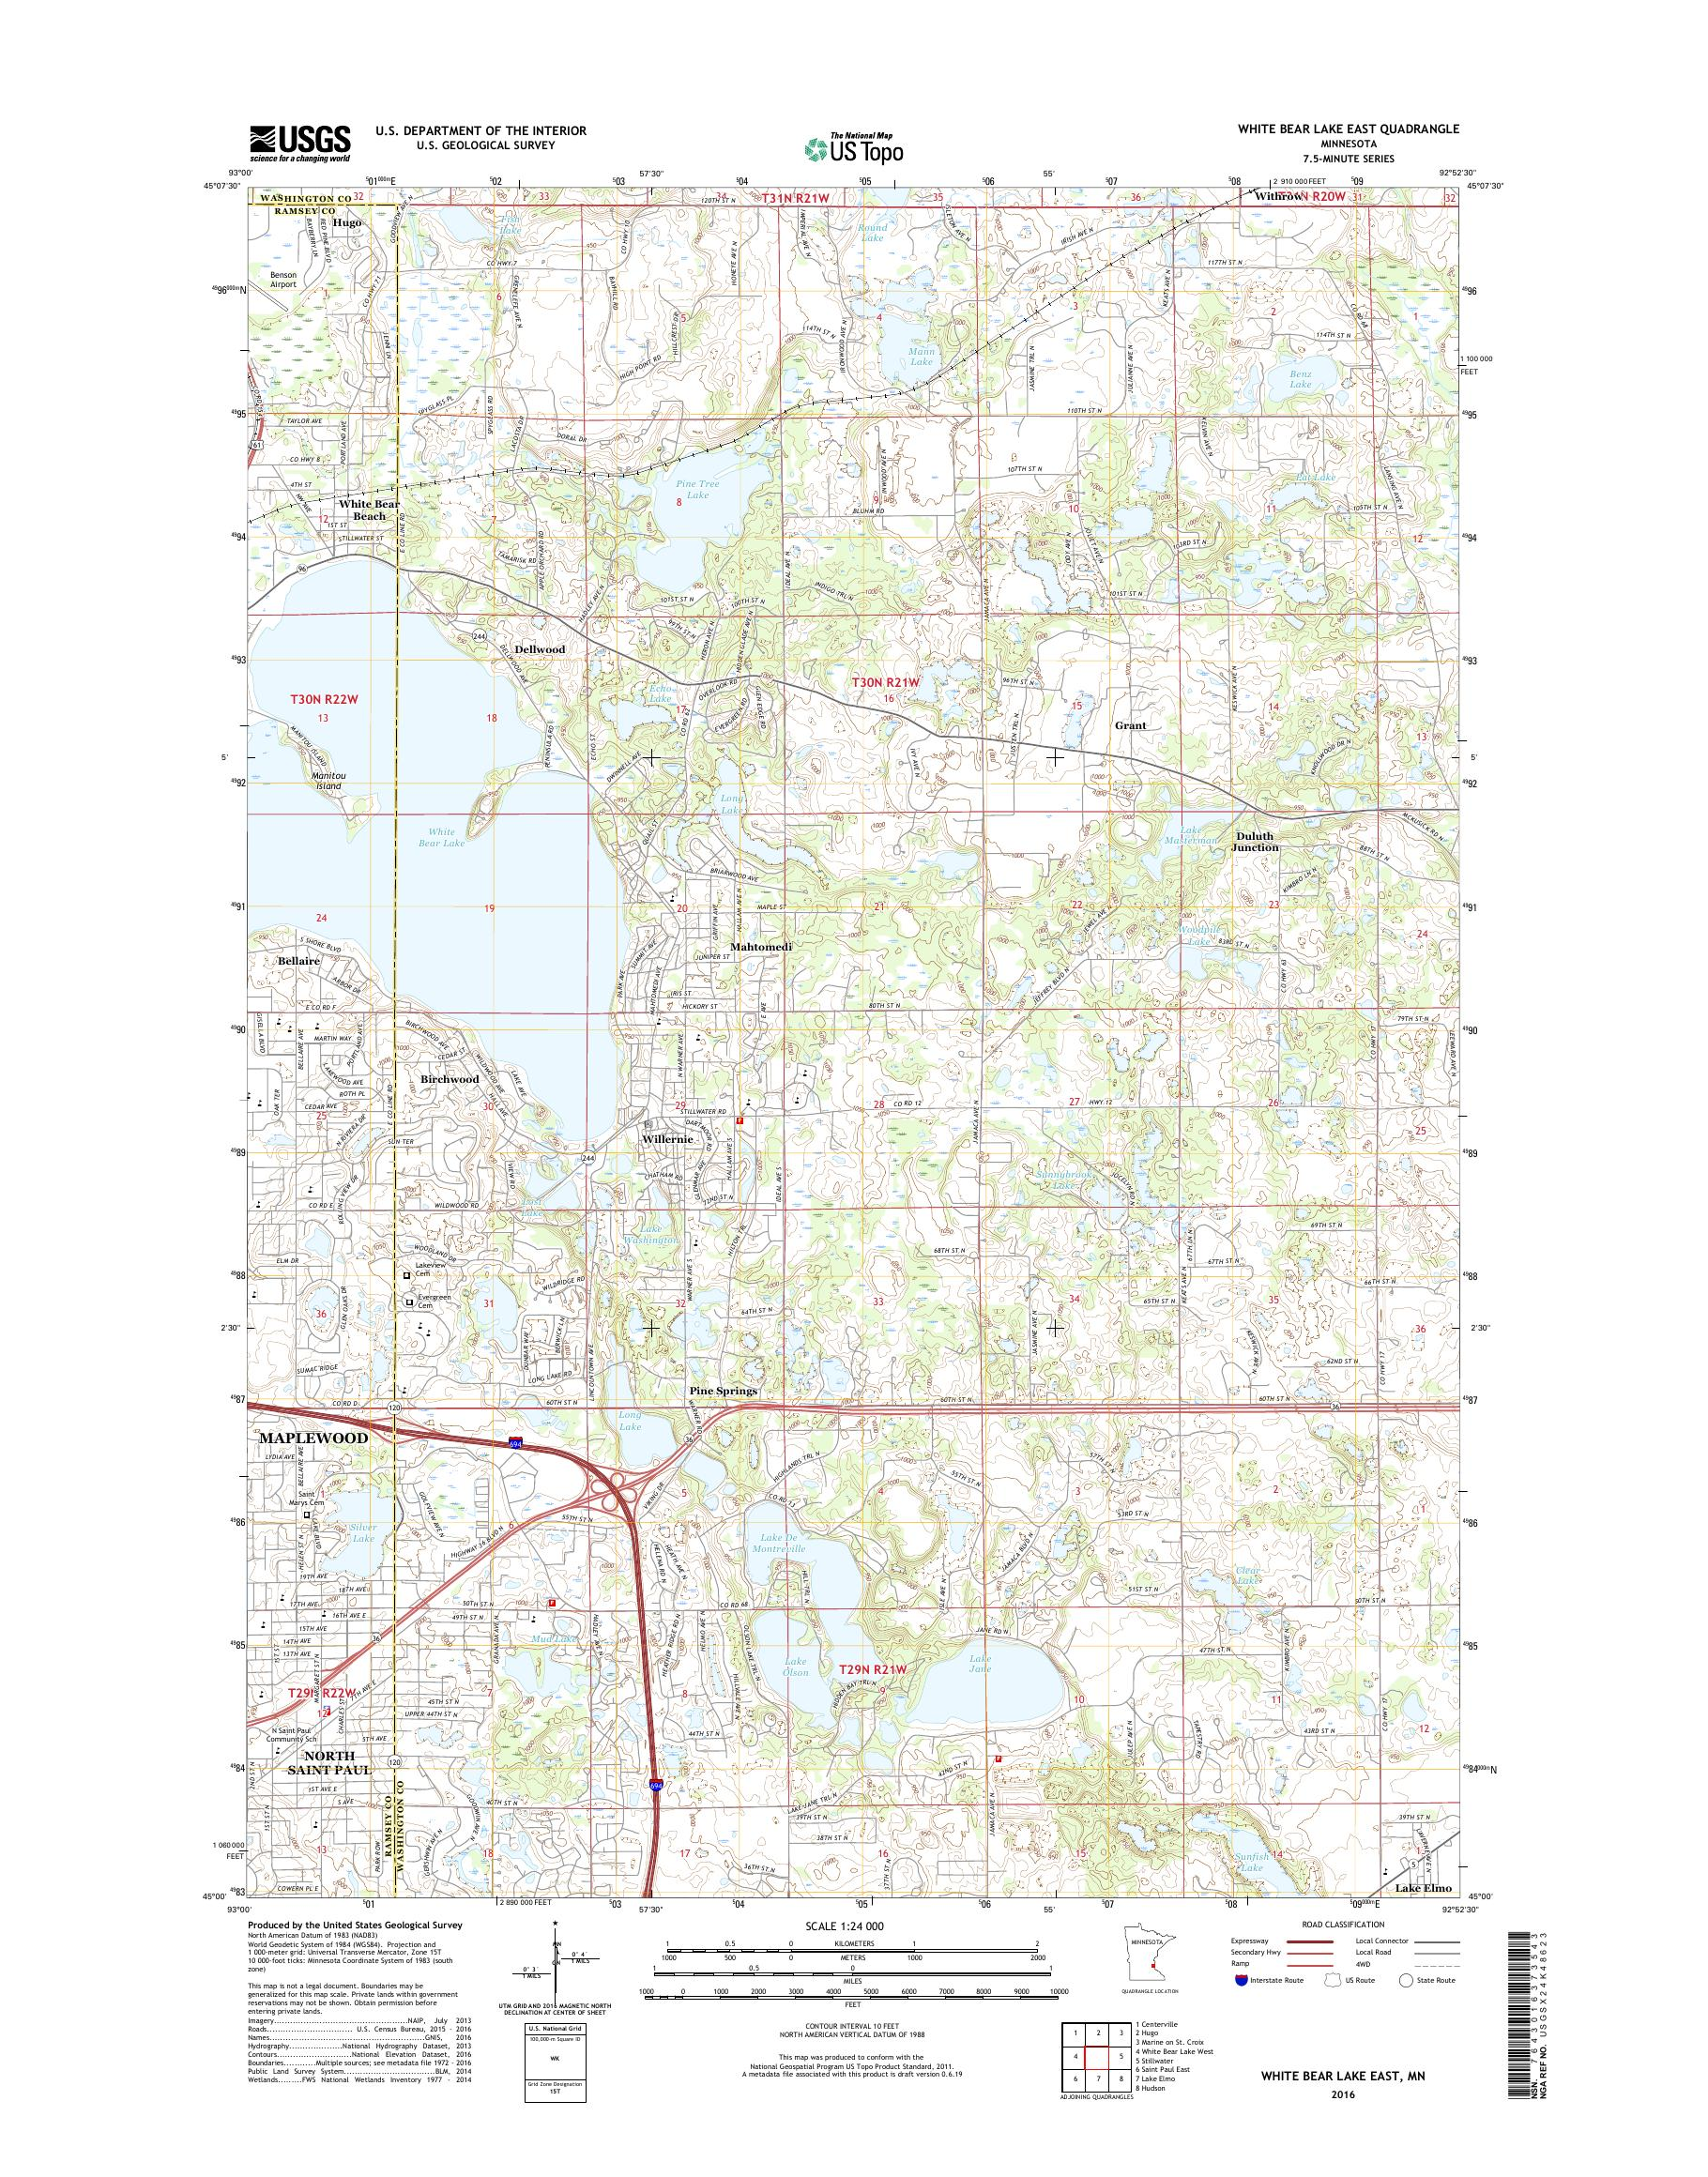 MyTopo White Bear Lake East, Minnesota USGS Quad Topo Map on lake contour maps, dnr lake maps, hume lake california hunting maps, texoma topography maps, national geographic maps, aerial lake maps, satellite lake maps, europe lake maps, tennessee river navigation chart maps, campground site maps, gps lake maps, navionics lake maps, usgs lake maps, best 2014 lake fork tx maps,